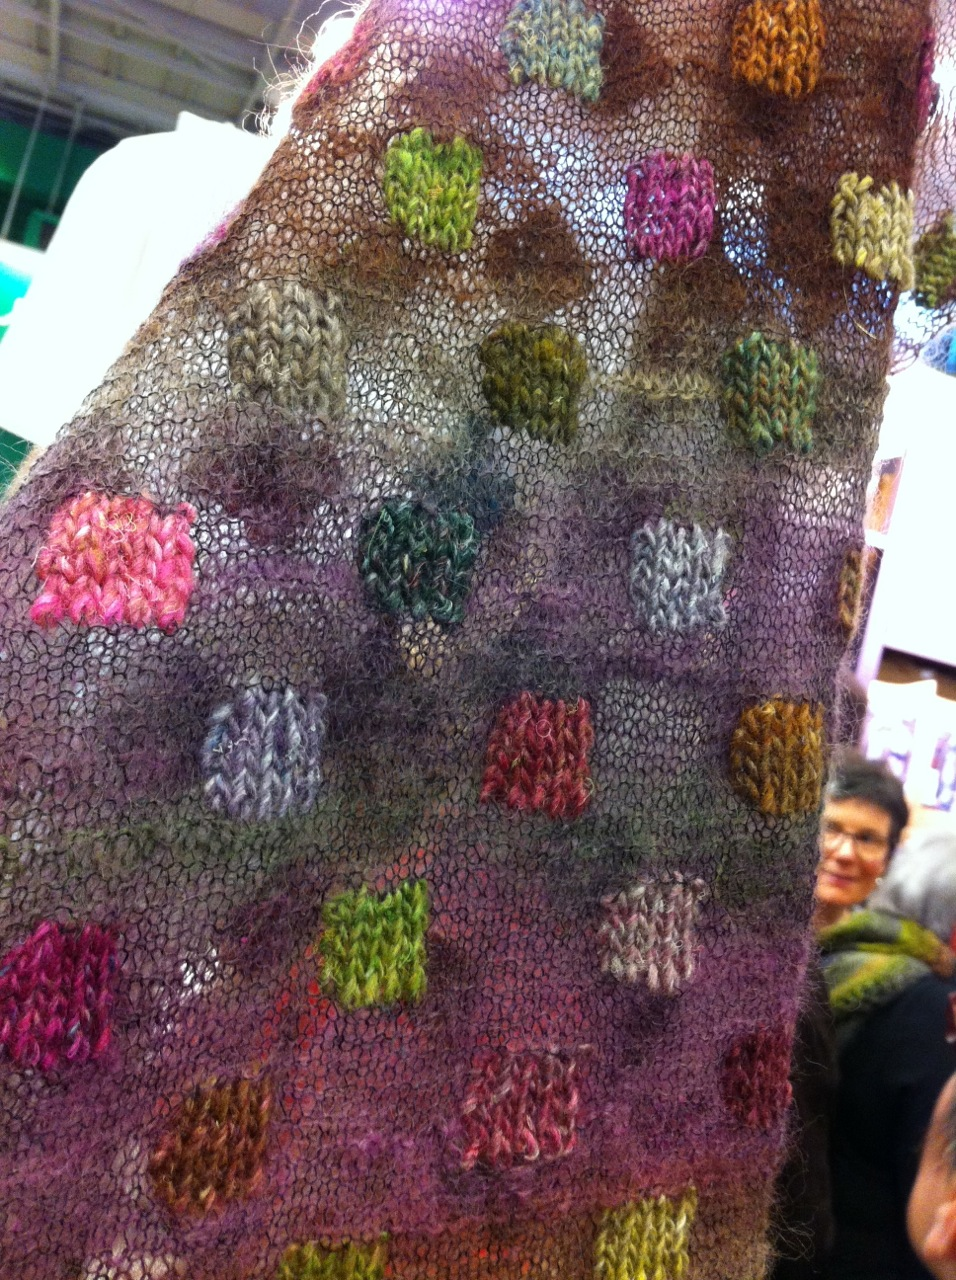 As did this scarf that we marvelled over the construction trying to figure out if it was intarsia or duplicate stitch.